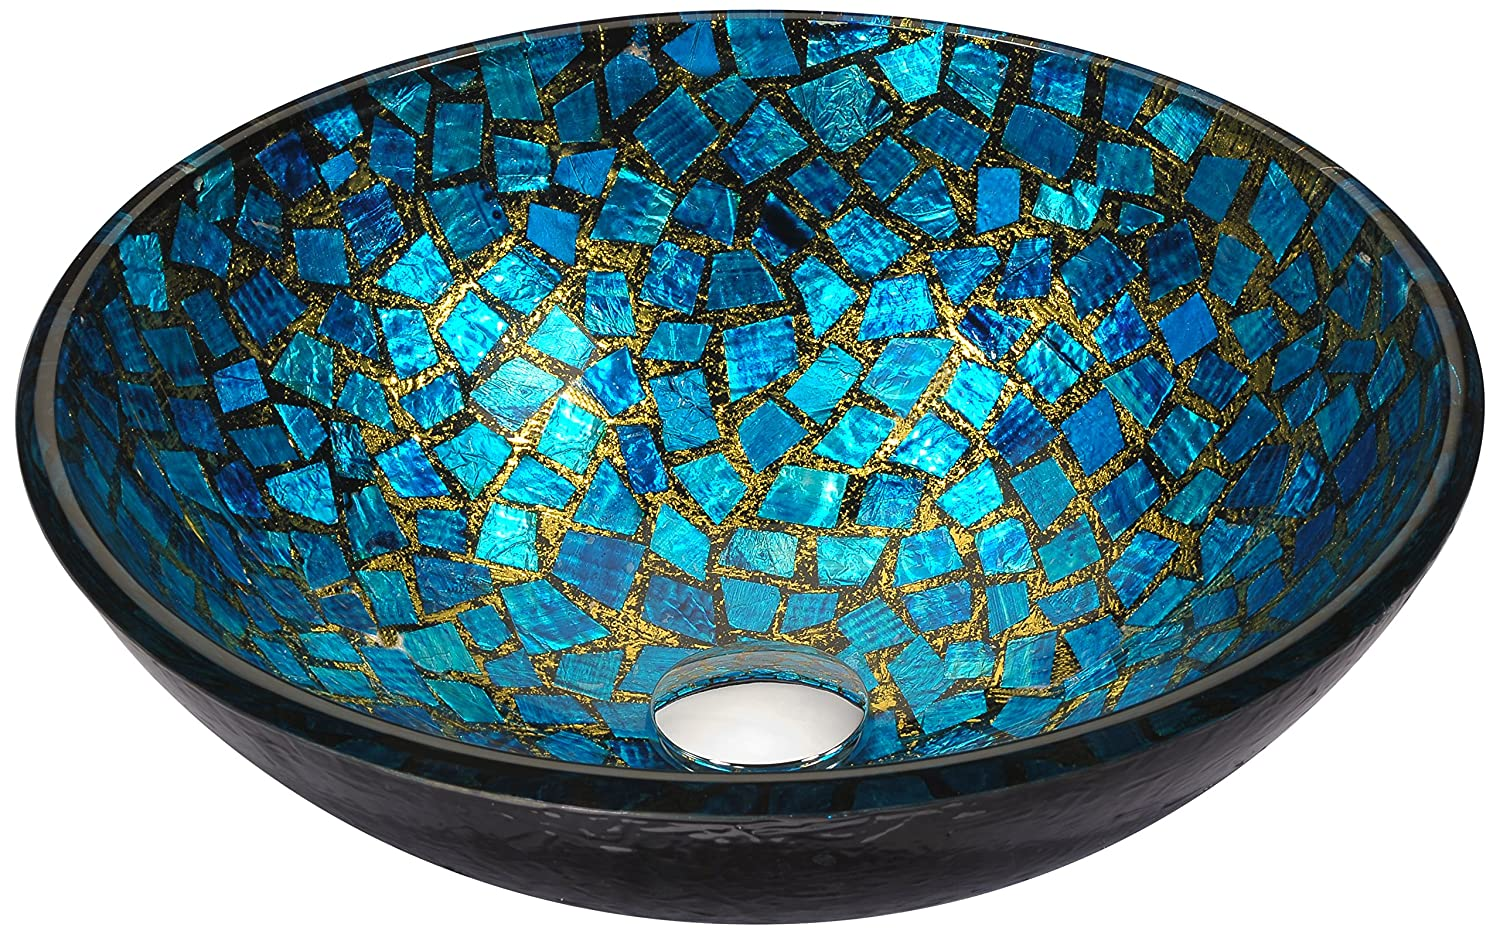 ANZZI Mosaic Modern Tempered Glass Vessel Bowl Sink in Blue Gold Mosaic Finish Top Mount Installation Bathroom Sinks above Counter Round Vanity Countertop Sink Bowl LS-AZ198